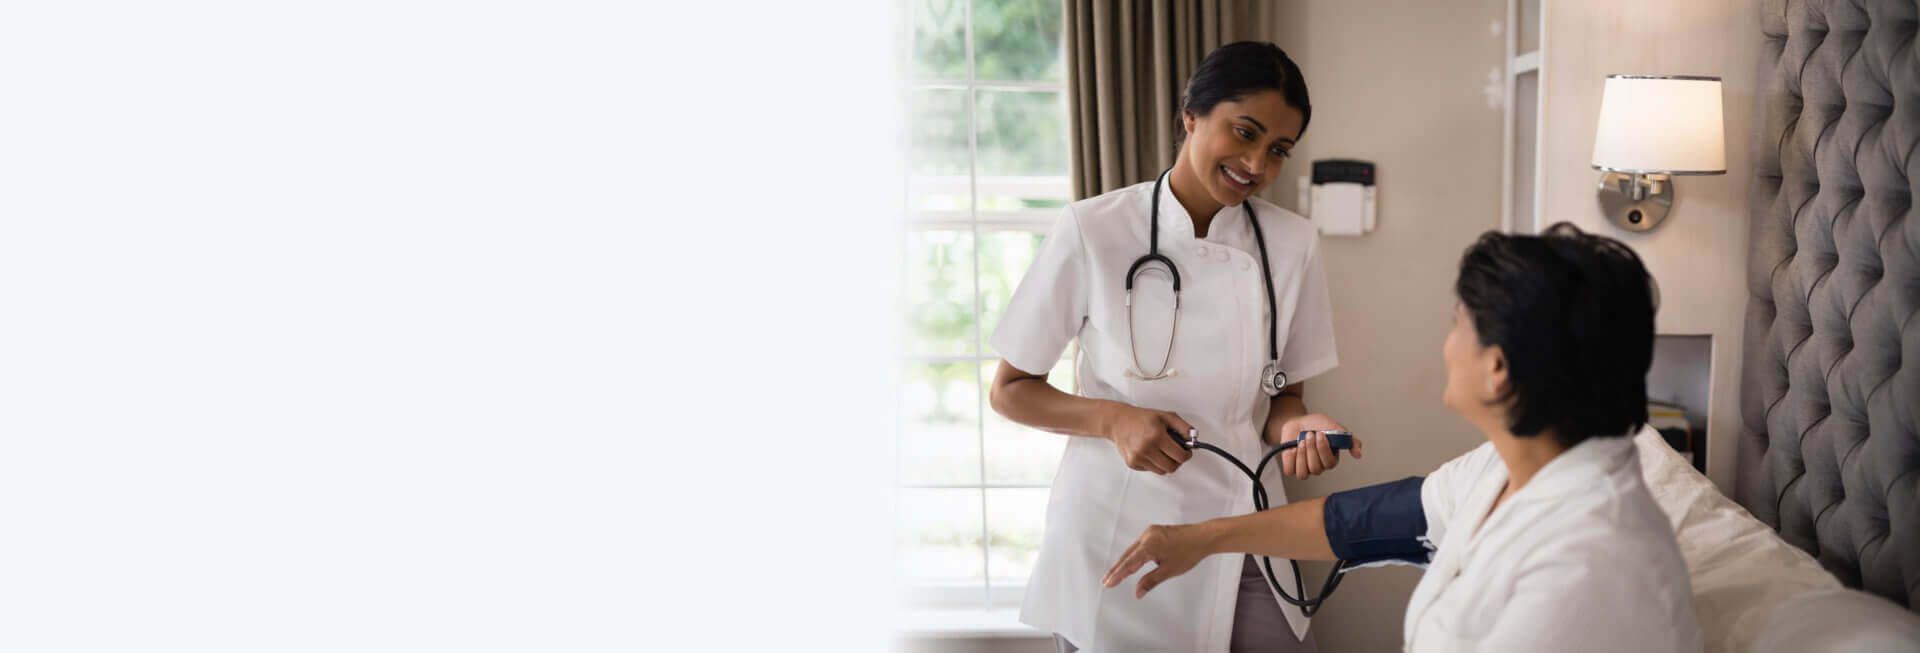 caregiver checking blood pressure of patient